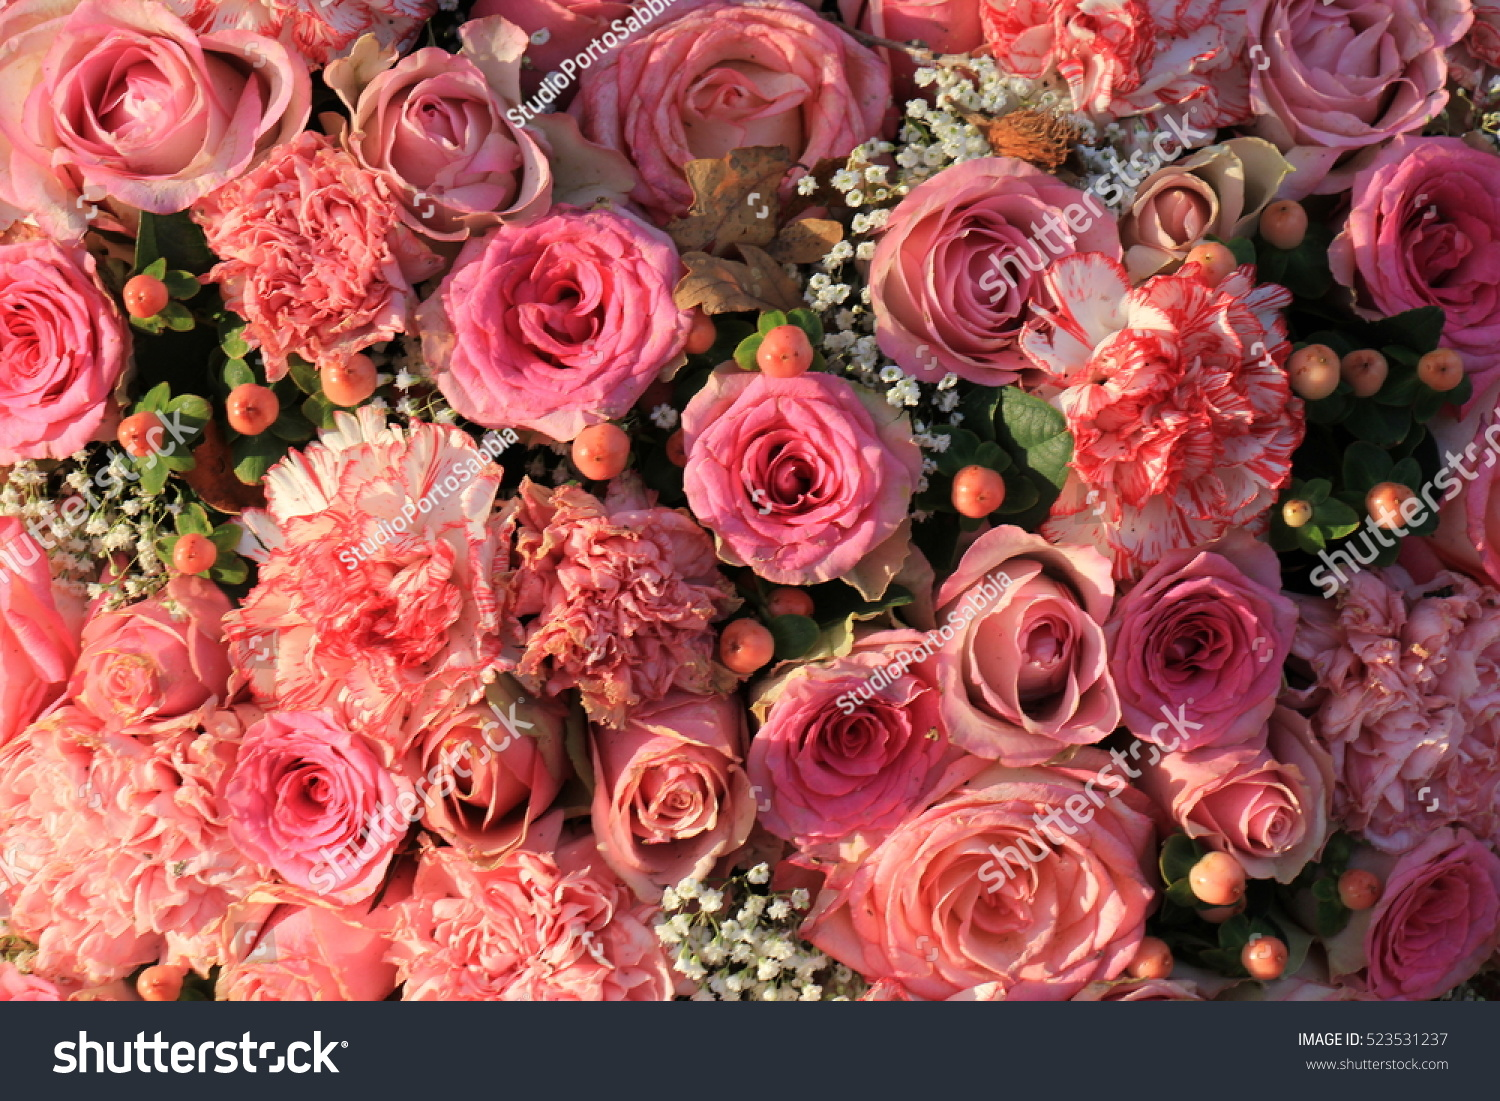 Mixed Flowers All Pink Wedding Arrangement Stock Photo Royalty Free